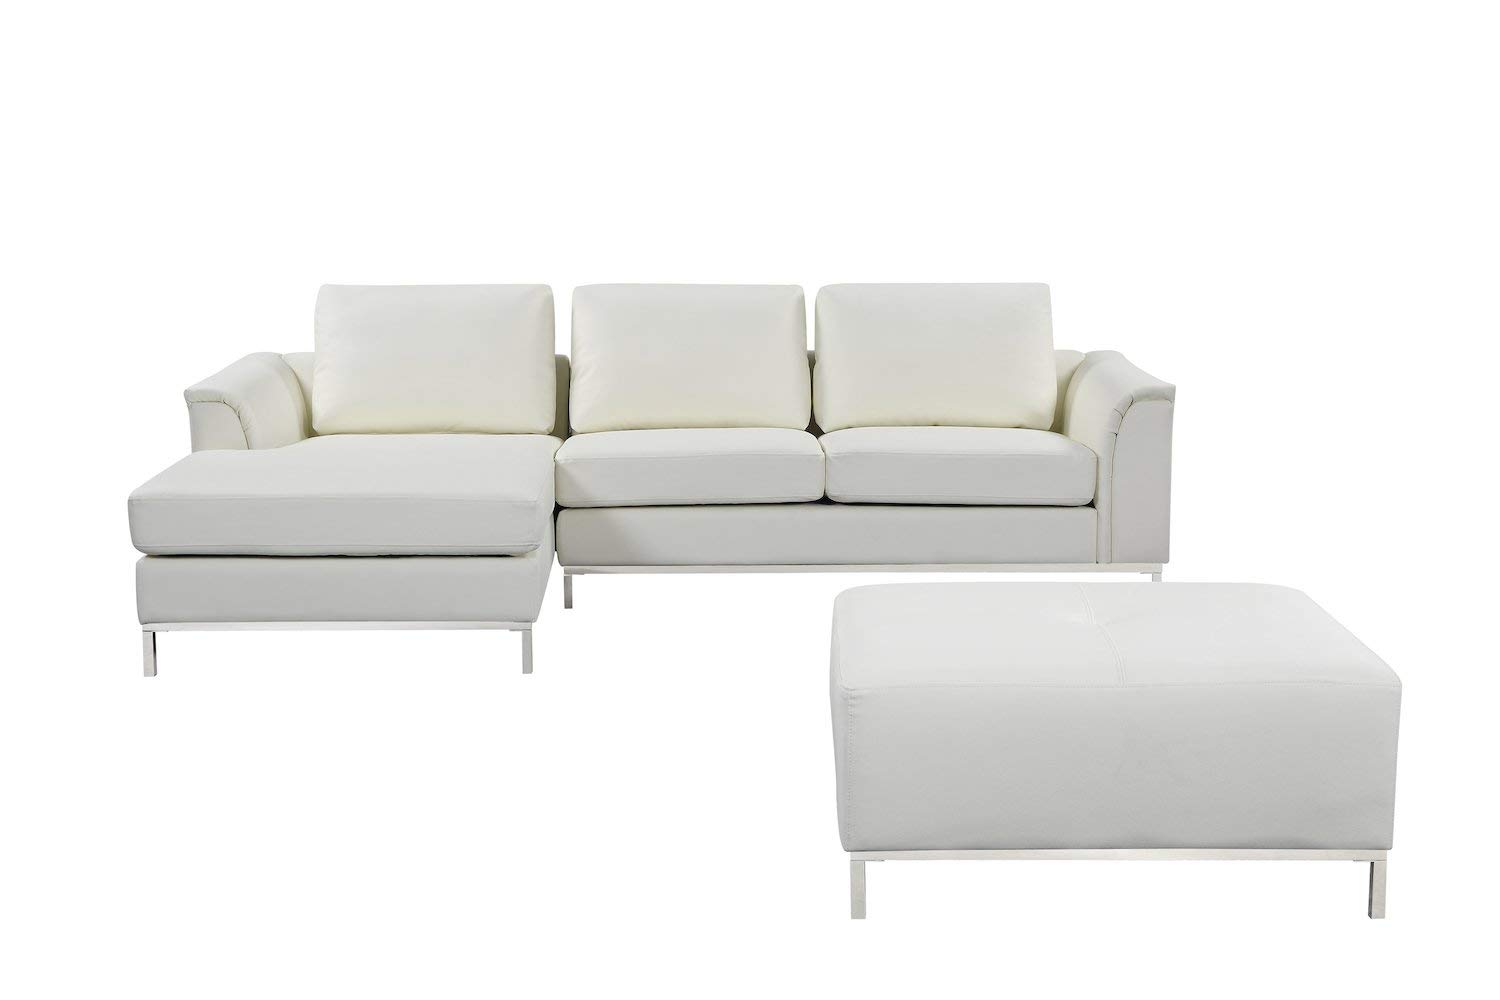 "Velago Ollon Modern Leather Sectional Sofa Set, 106"" W, Cream White"